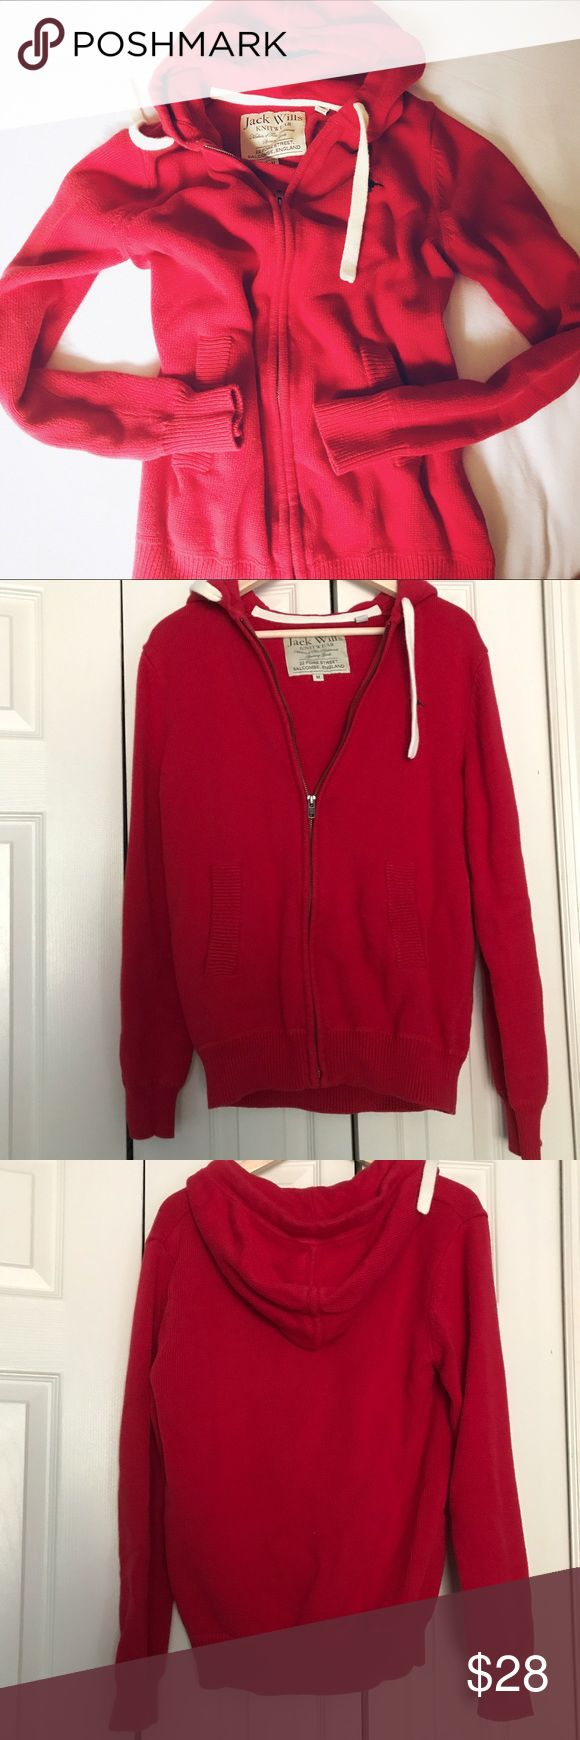 JACK WILLS Men's zip up hoodie sweater One Direction's favorite brand - Jack Wills classic red zip up  hoodie sweater! Logo is on left chest, and nothing in back.   Great condition, no flaws noticed  Cover photo is similar style for model purpose only Jack Wills Sweaters Zip Up